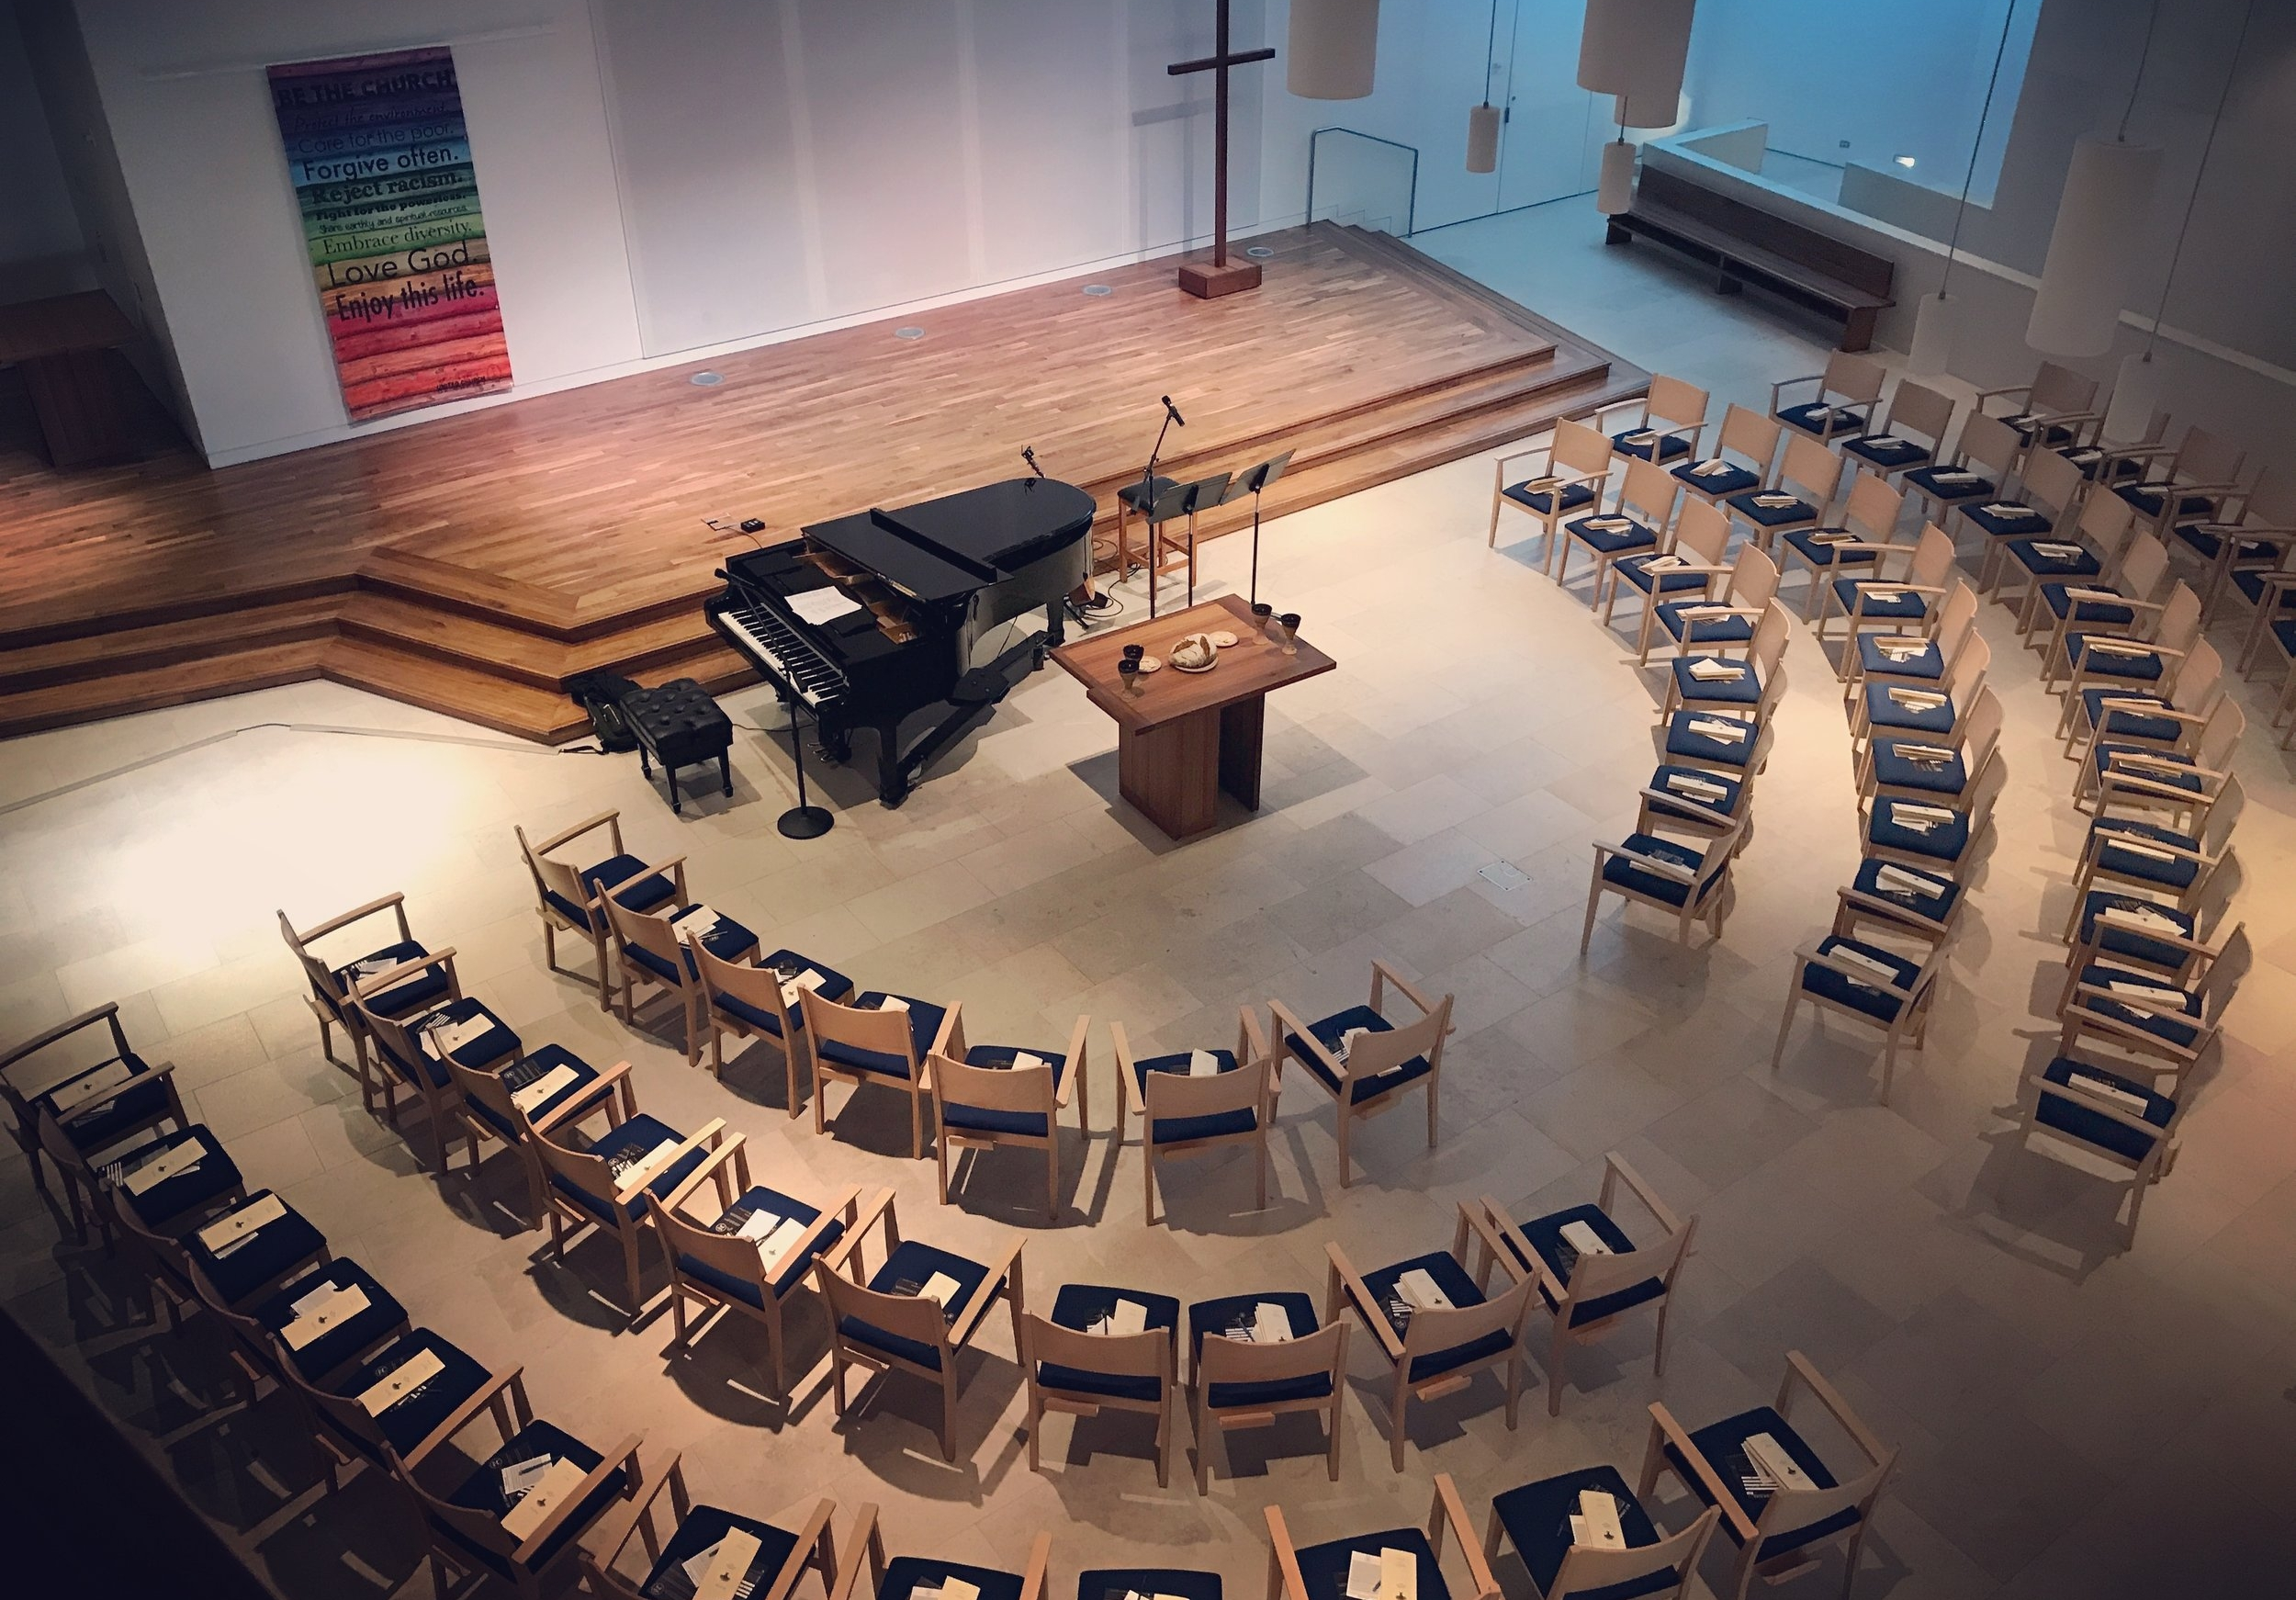 Additional Gatherings - Would you like to stretch your church or community and invite them into a new kind of worship experience? I'd love to offer a practice-based, liturgical-modern, experimental gathering based on the lessons we learned as The Practice Community over the last four years. This often works best as an evening worship service, but can happen on Sunday mornings also.